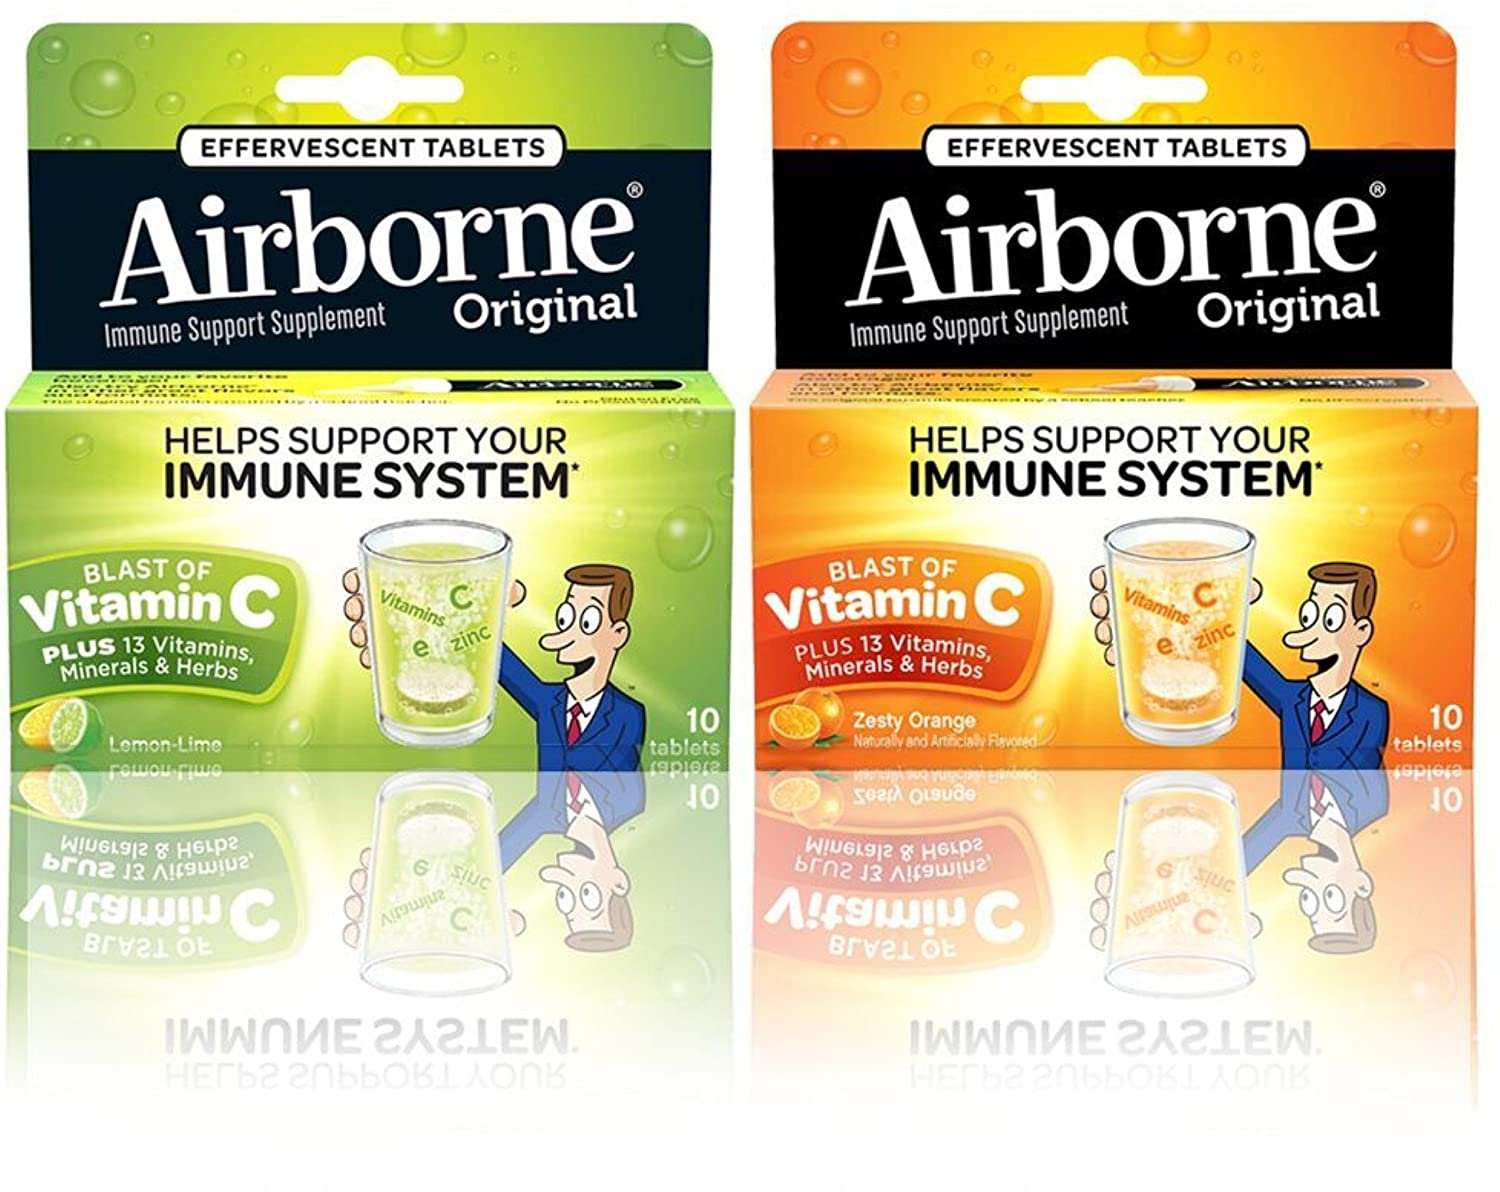 Airborne Immune Support Effervescent Value Pack Tablets, Lemon Lime & Zesty Orange Flavored- 1000mg Vitamin C With Echinacea, Ginger, Amino Acid Blend, Zinc, & Selenium, Gluten Free, 10 Count (1 each)